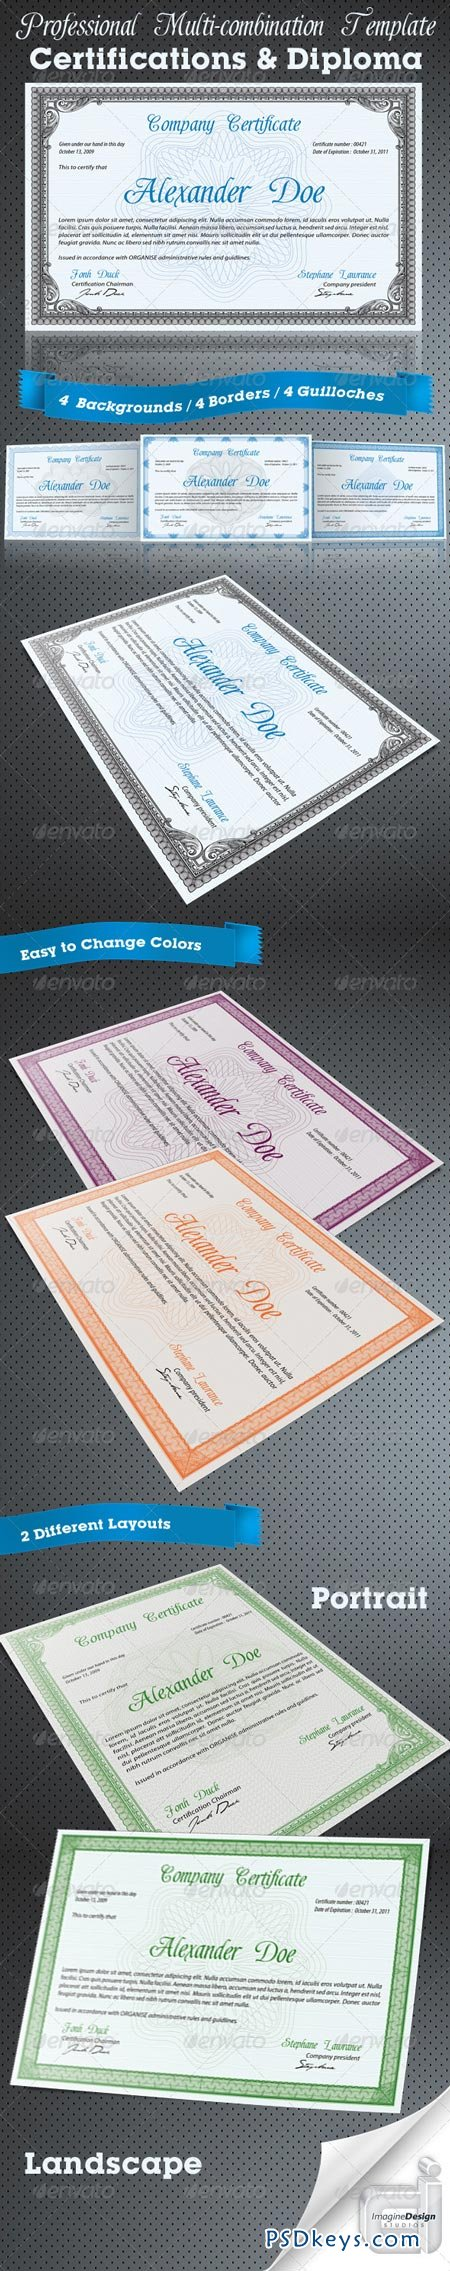 professional certificate or diploma templates  professional certificate or diploma templates 376224